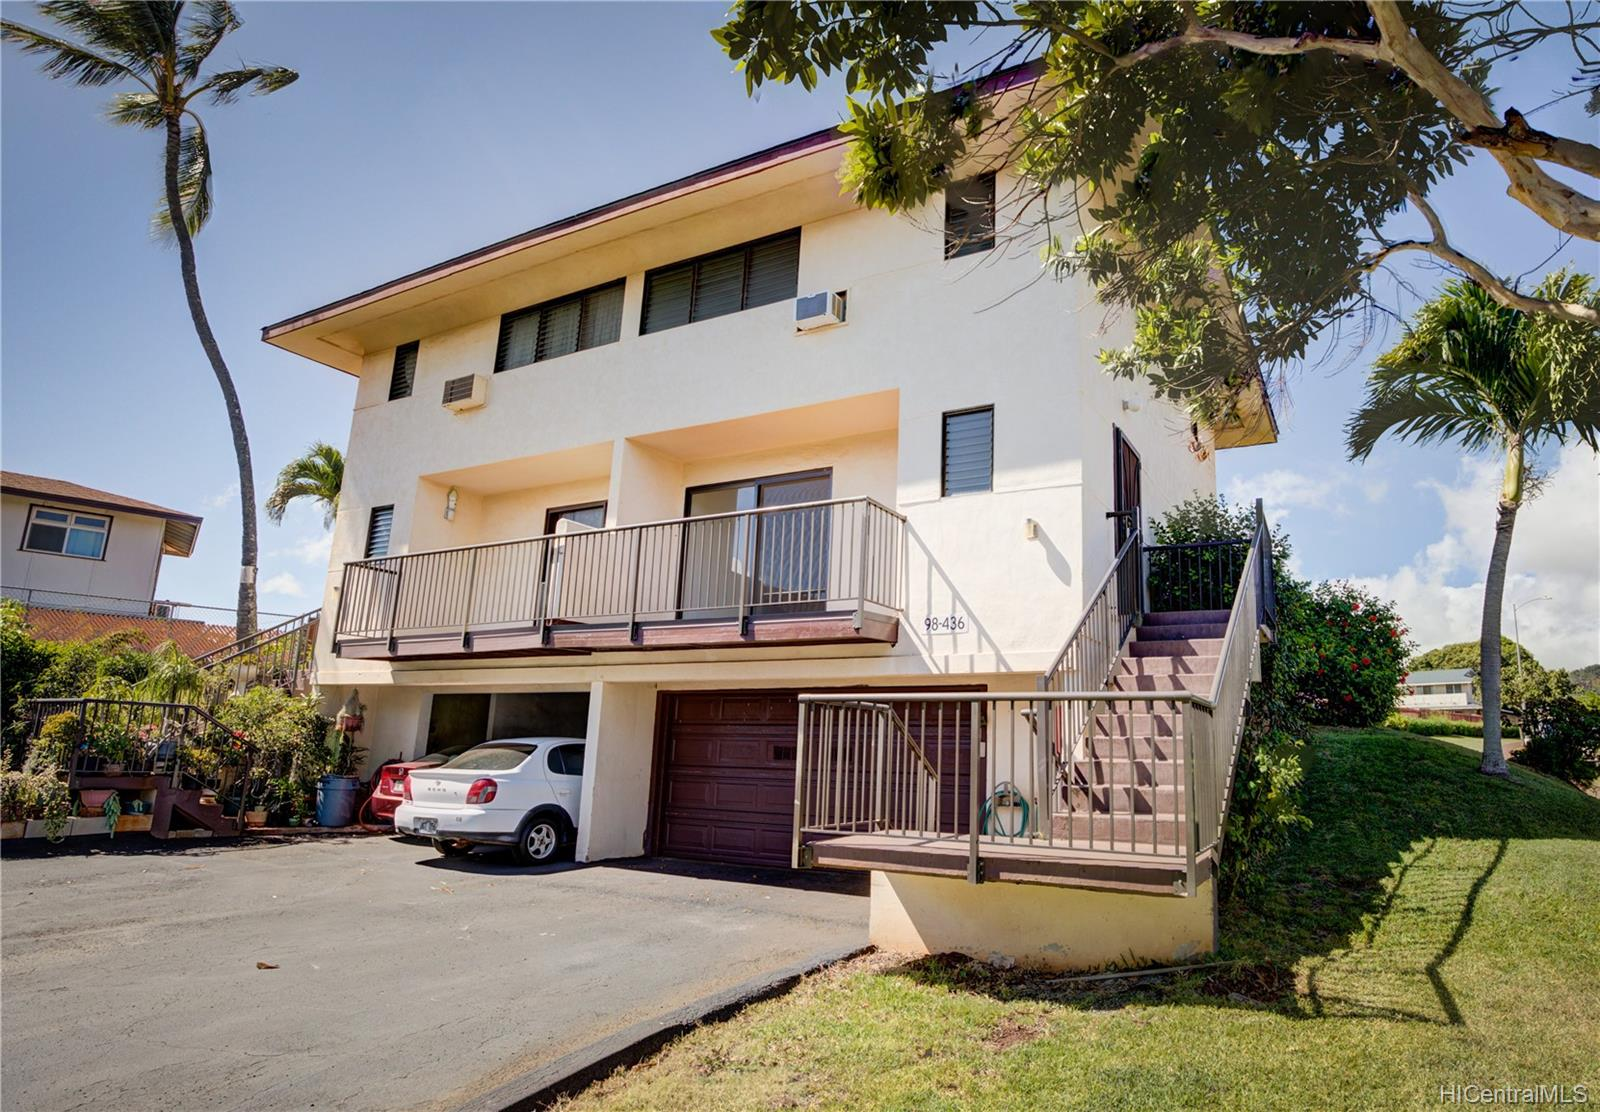 98-436 Kaonohi Street townhouse # 22/480, Aiea, Hawaii - photo 1 of 24